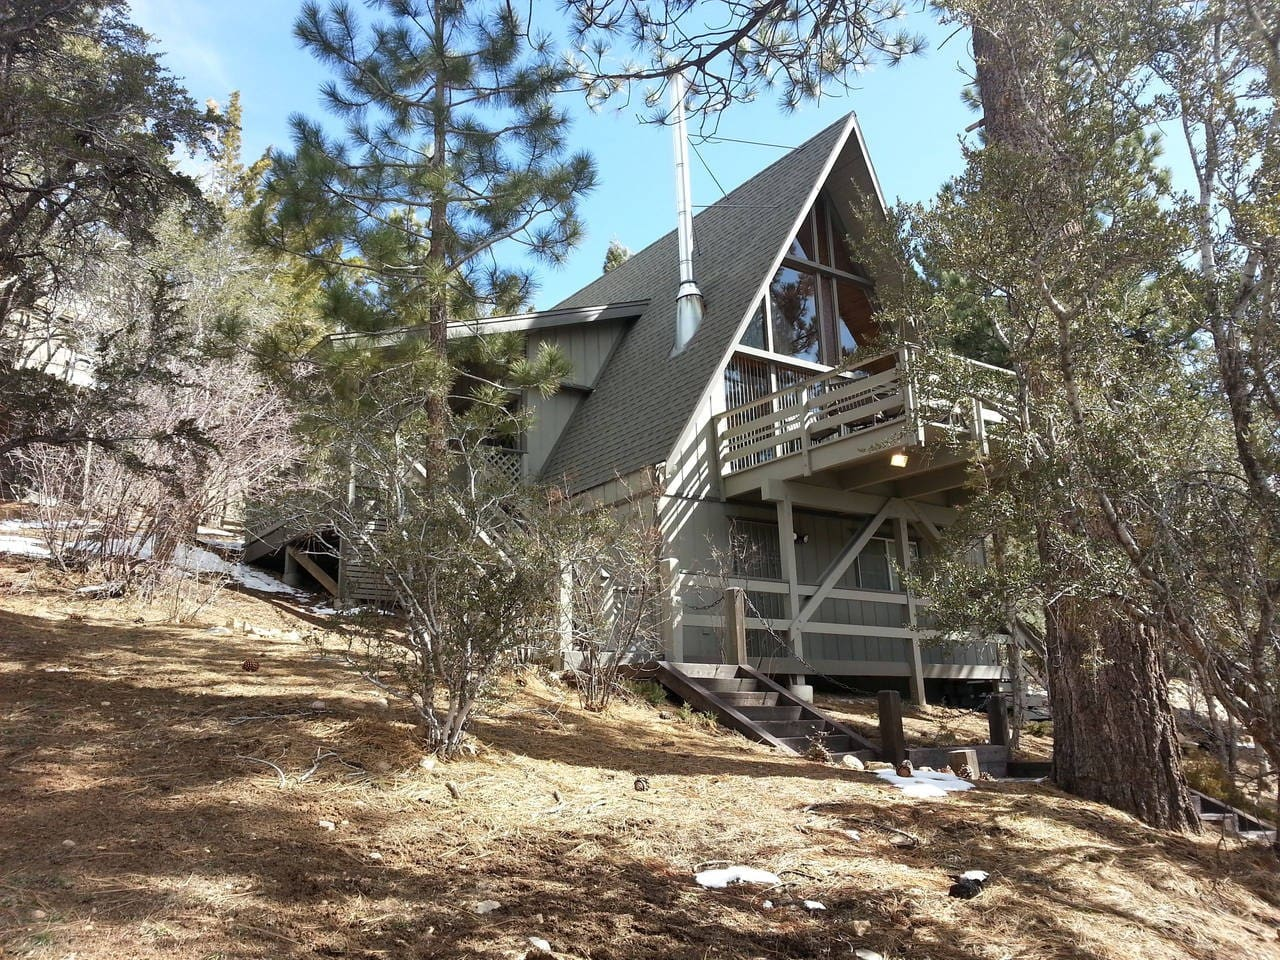 A-frame cabin nested in the pine and ironwood trees.